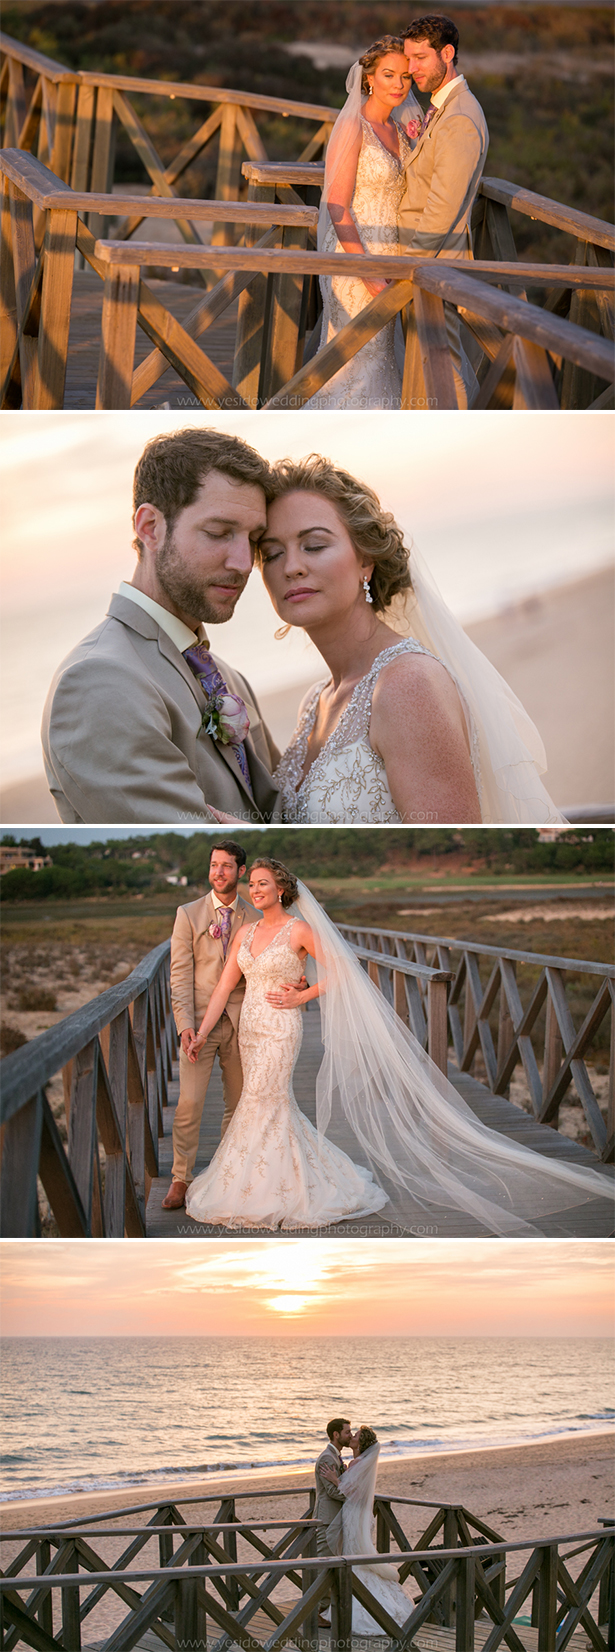 The bride and groom on the beach   Marina and Gary's lavender real wedding   Yes I do! Algarve Wedding Photography   Confetti.fo.uk